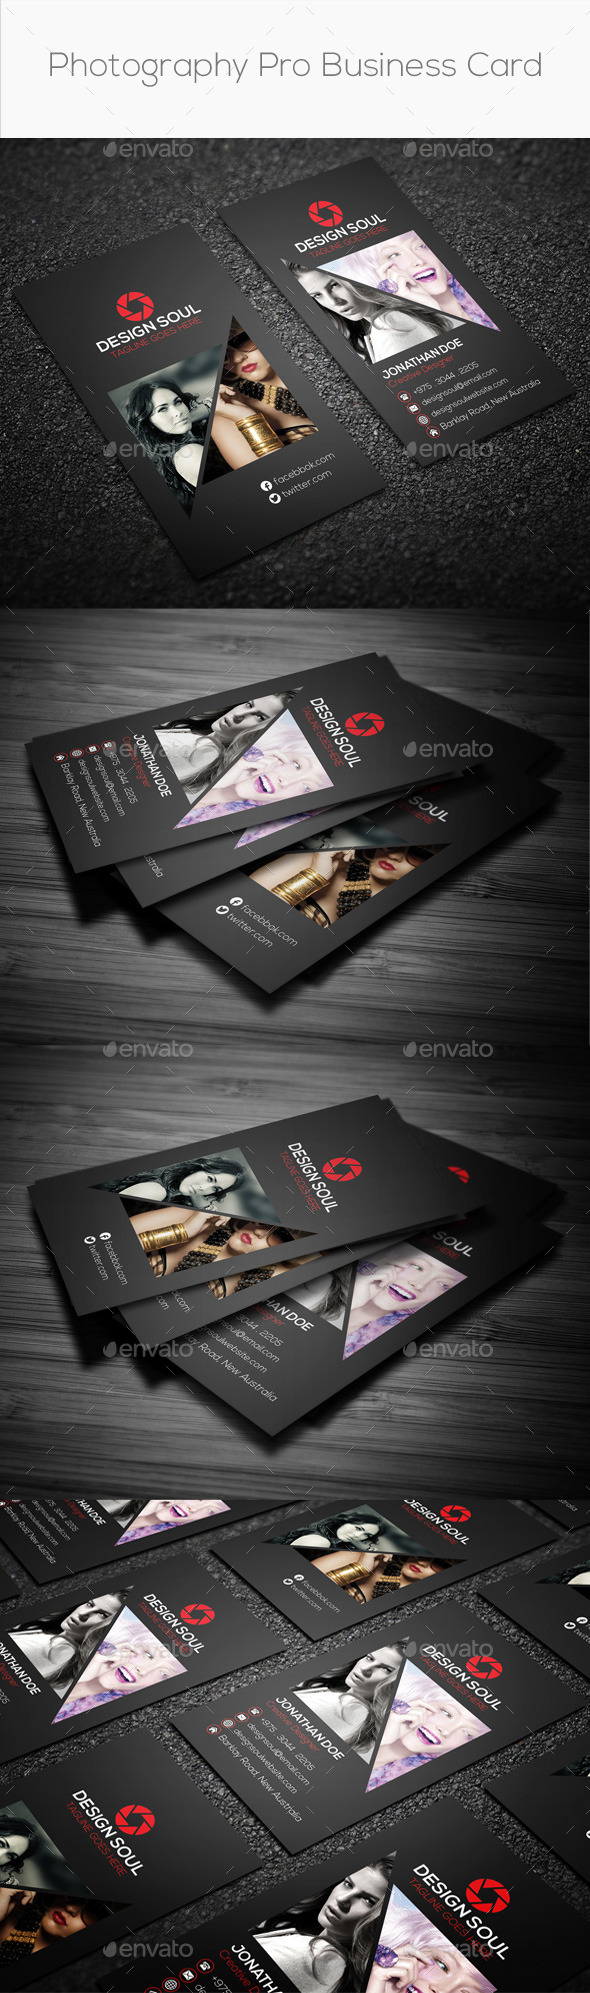 GraphicRiver Photography Pro Business Card 8977762